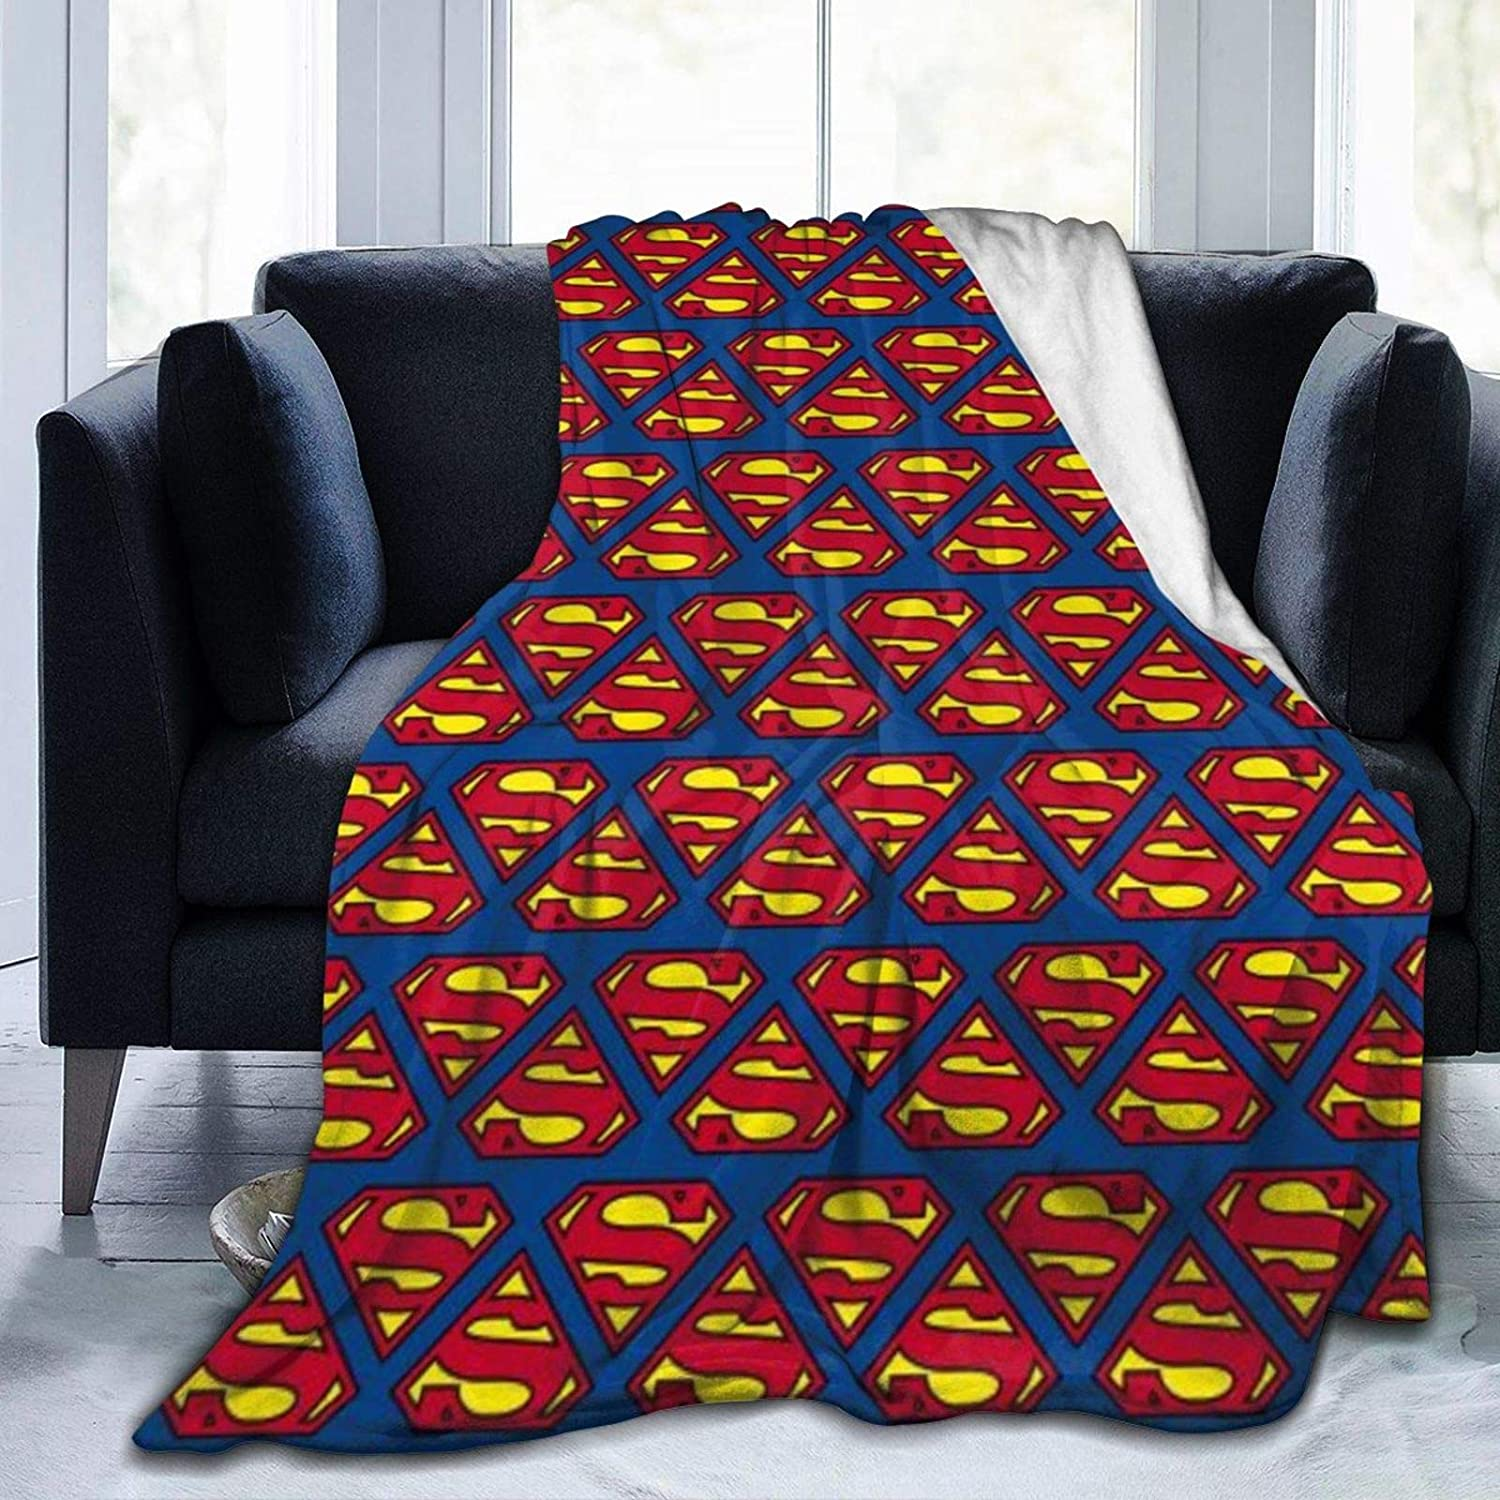 Bedais Luxury Blanket Superman Flannel Plush Blanket Fuzzy Soft Blanket Microfiber for Couch/Bed/Office,All Season Gifts